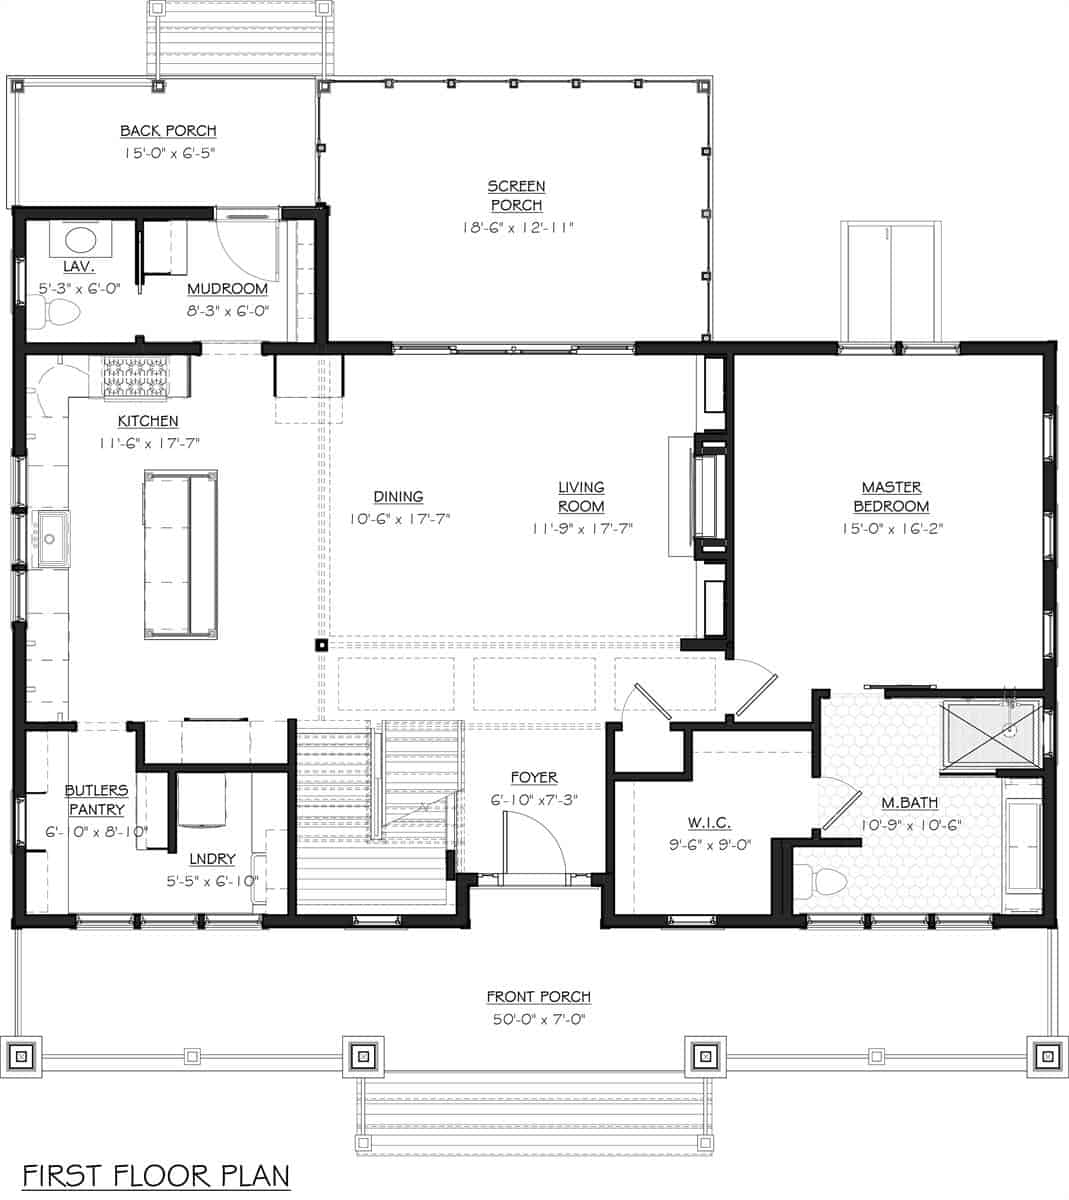 Main level floor plan of a 4-bedroom two-story craftsman style The 2018 Idea home with foyer, living room, dining room, kitchen, butler's pantry, primary suite, and lots of outdoor spaces.